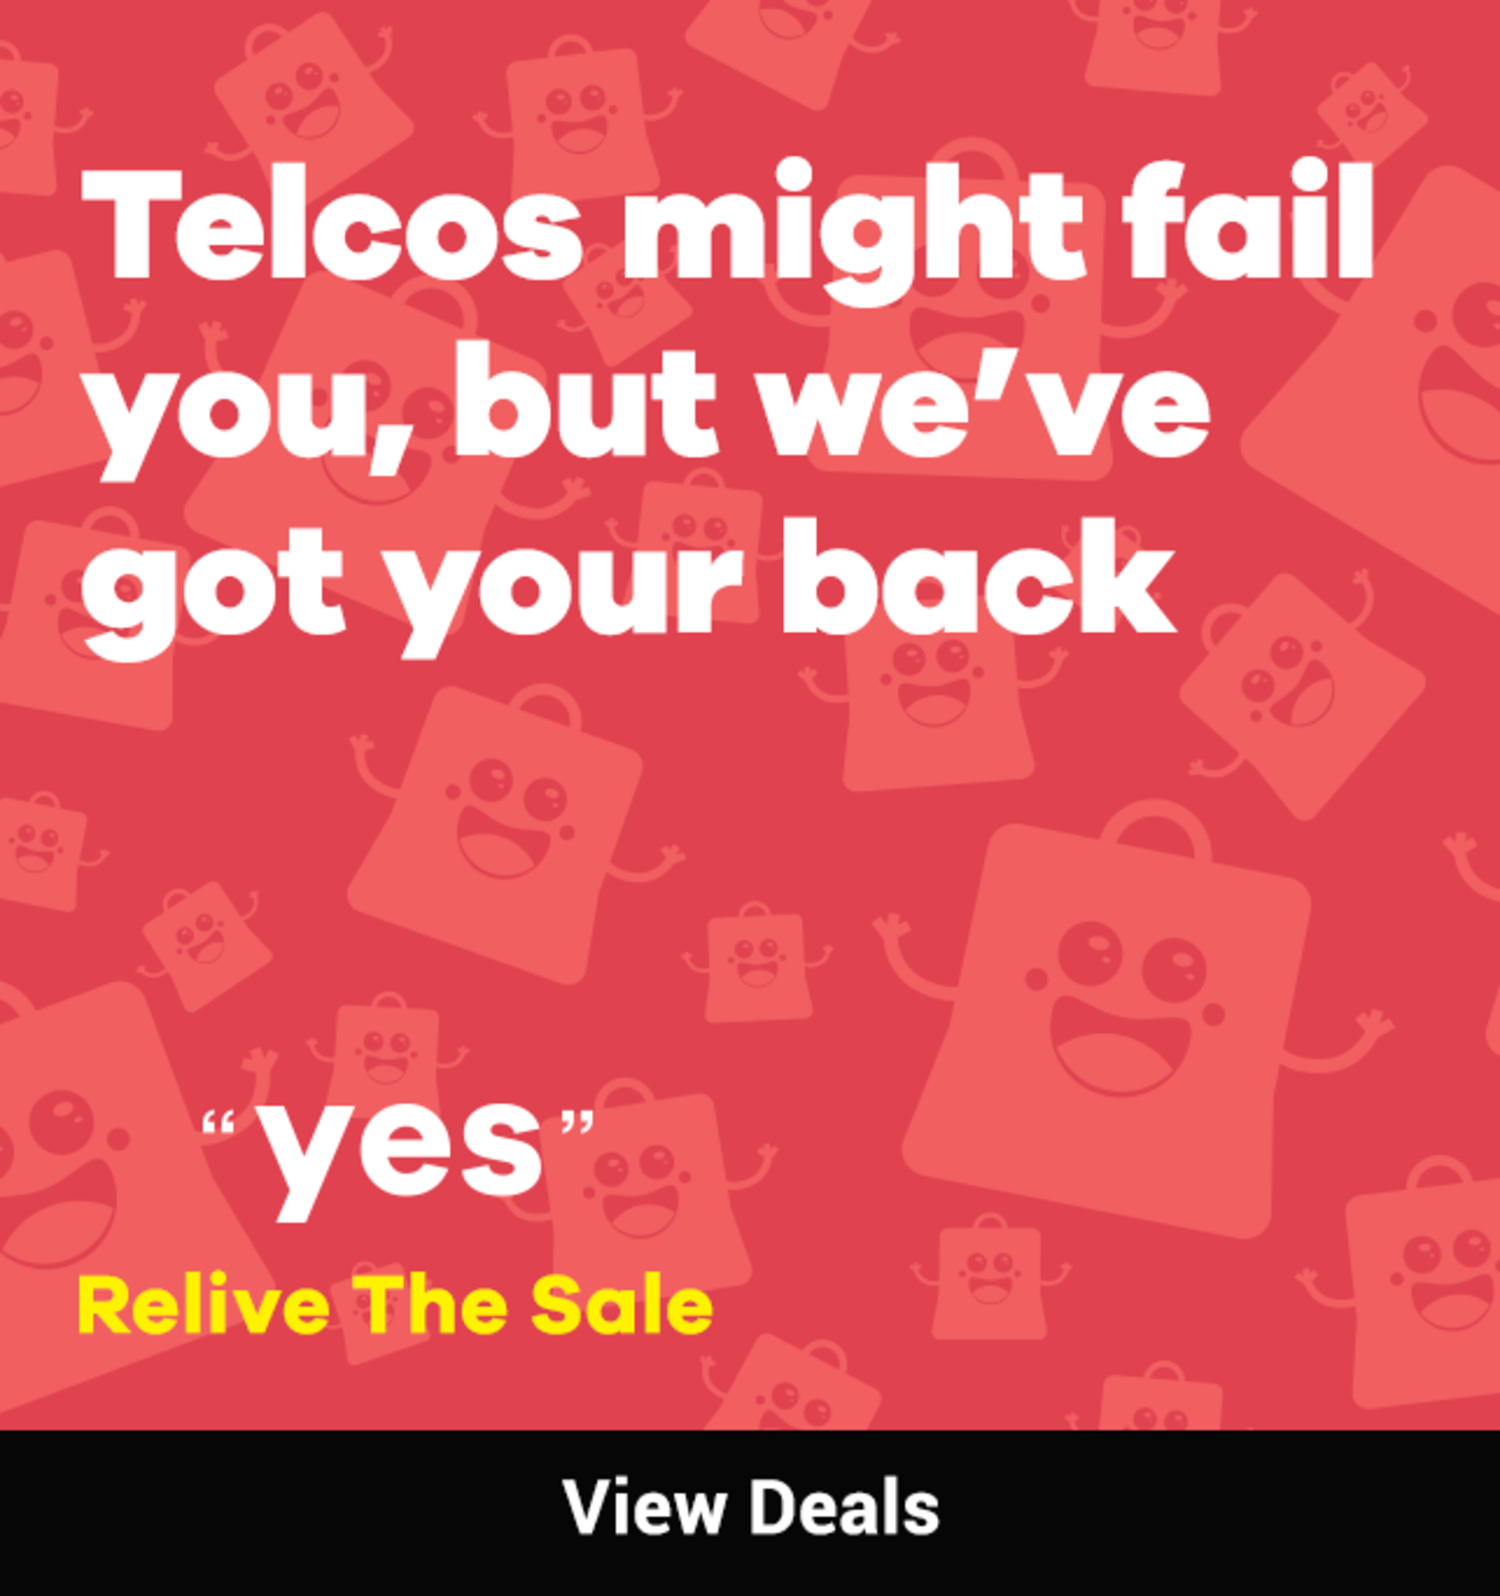 Yes! Relive The Sale